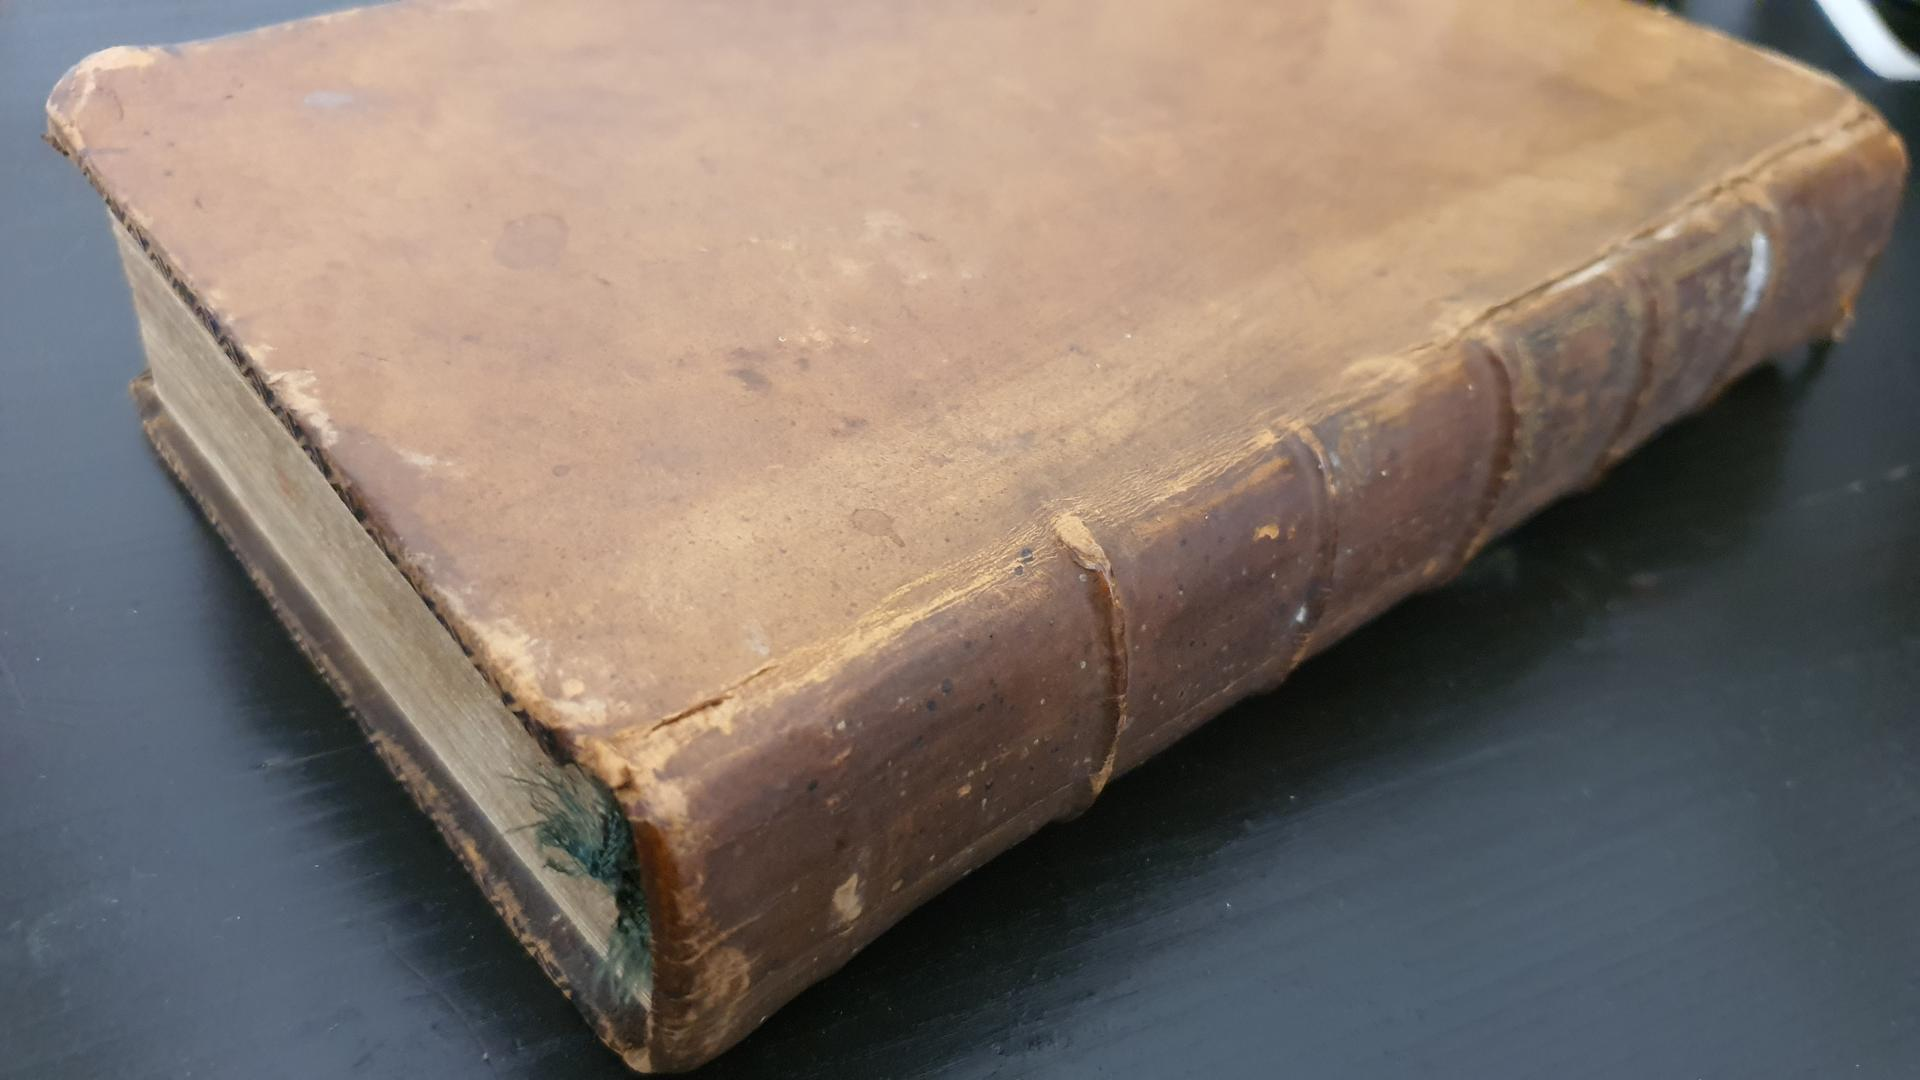 1765 The History of the Life of Reginald Pole